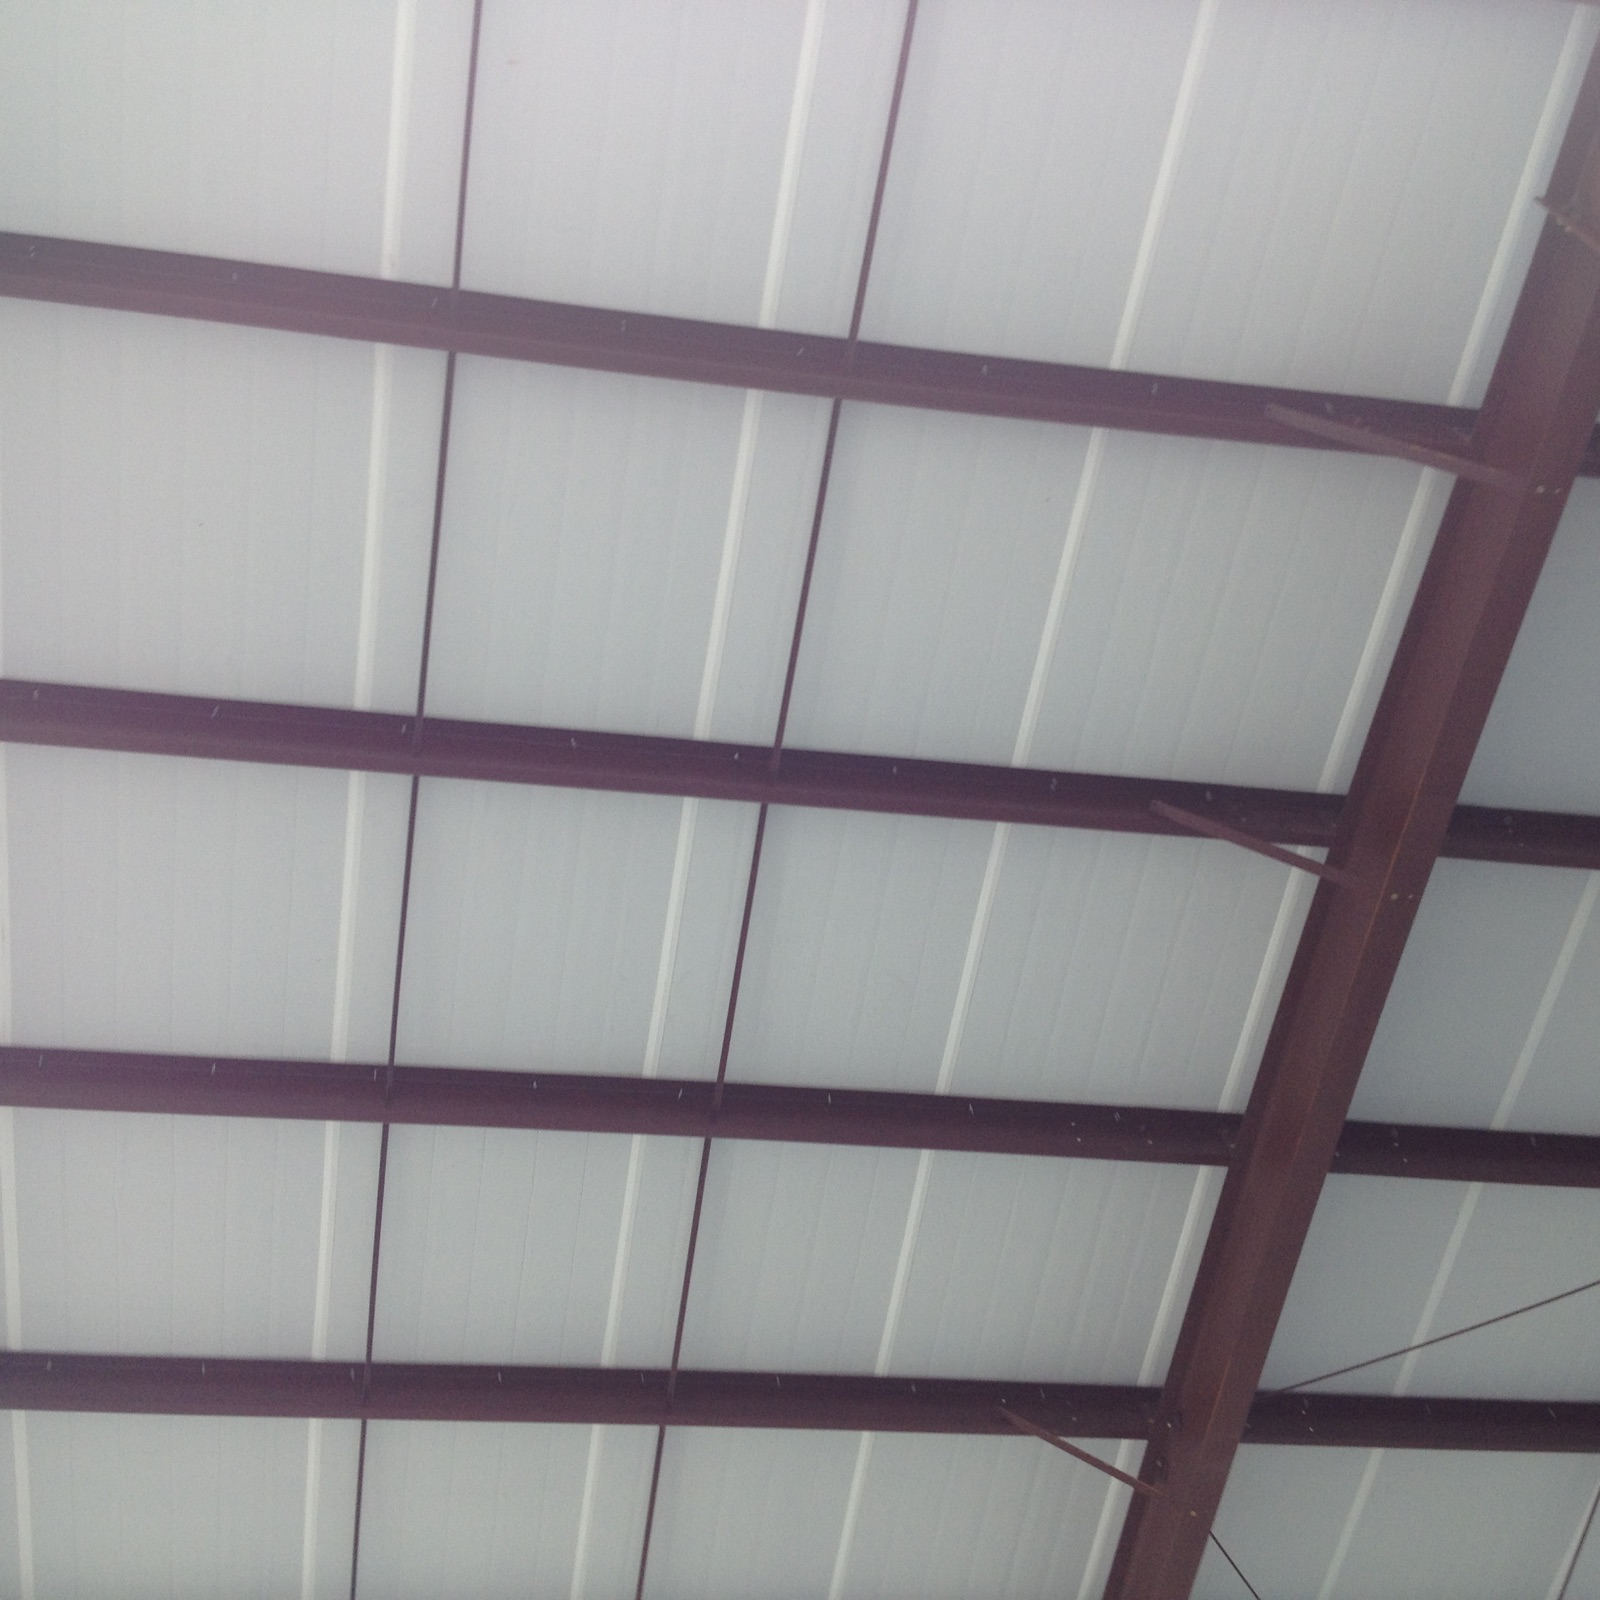 Metal Building Insulation Panels : Insulation systems for buildings wrightbuilding